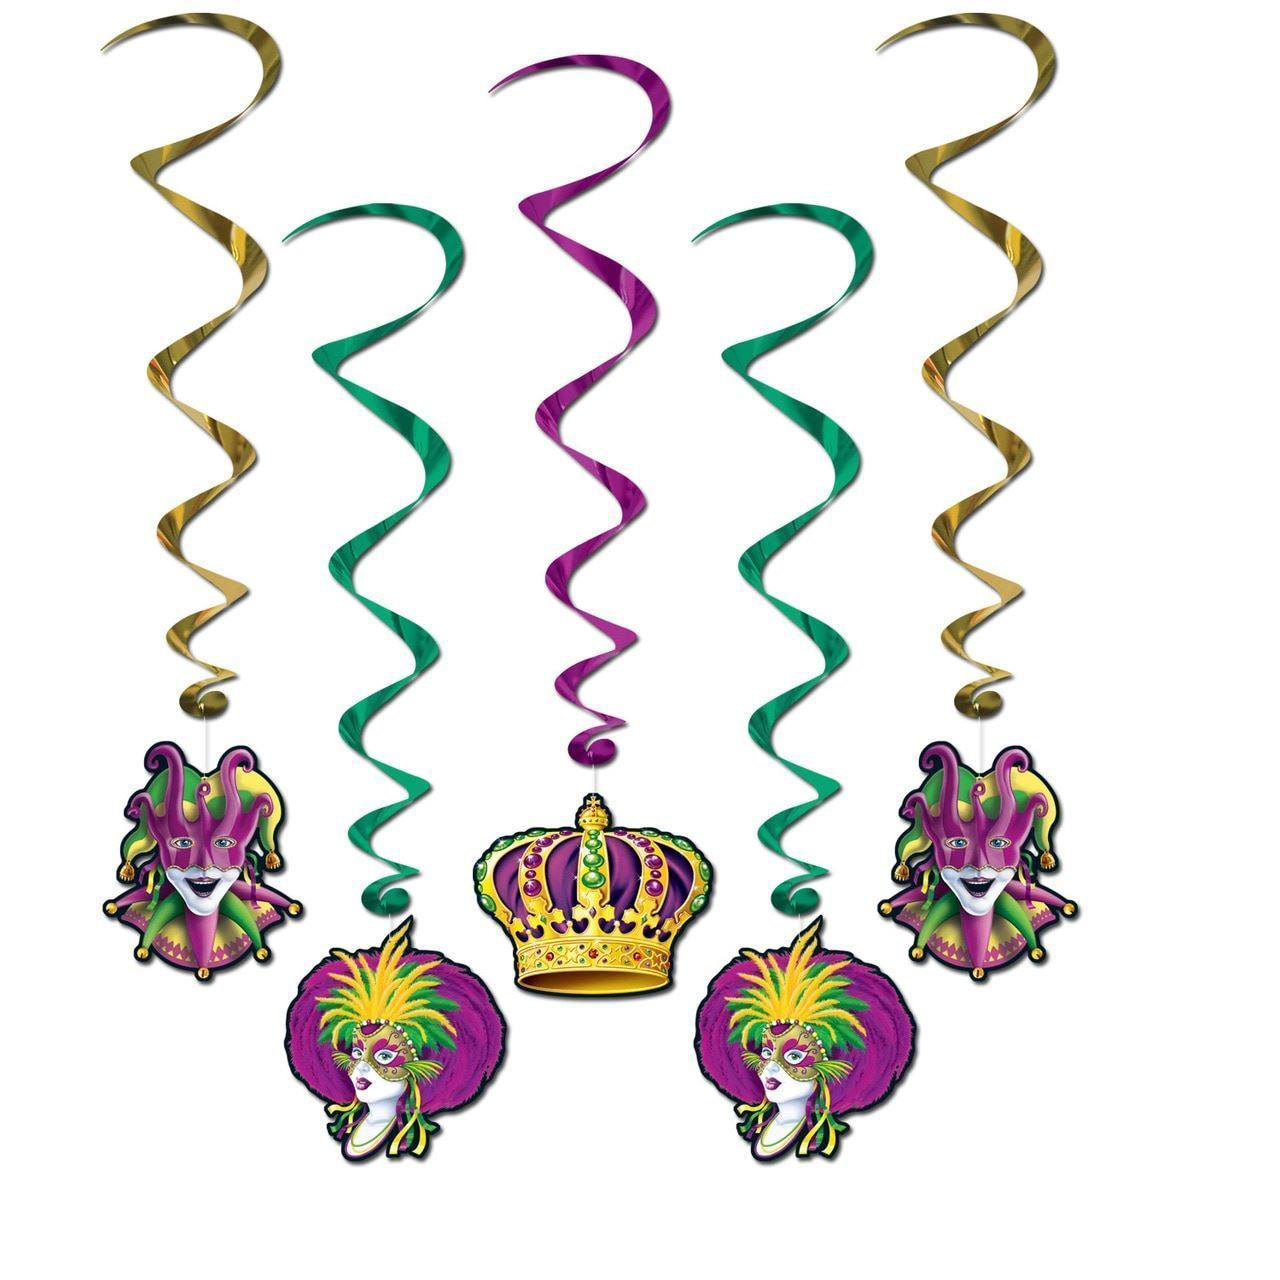 Mardi Gras Hanging Decorations Whirls 5 Pc